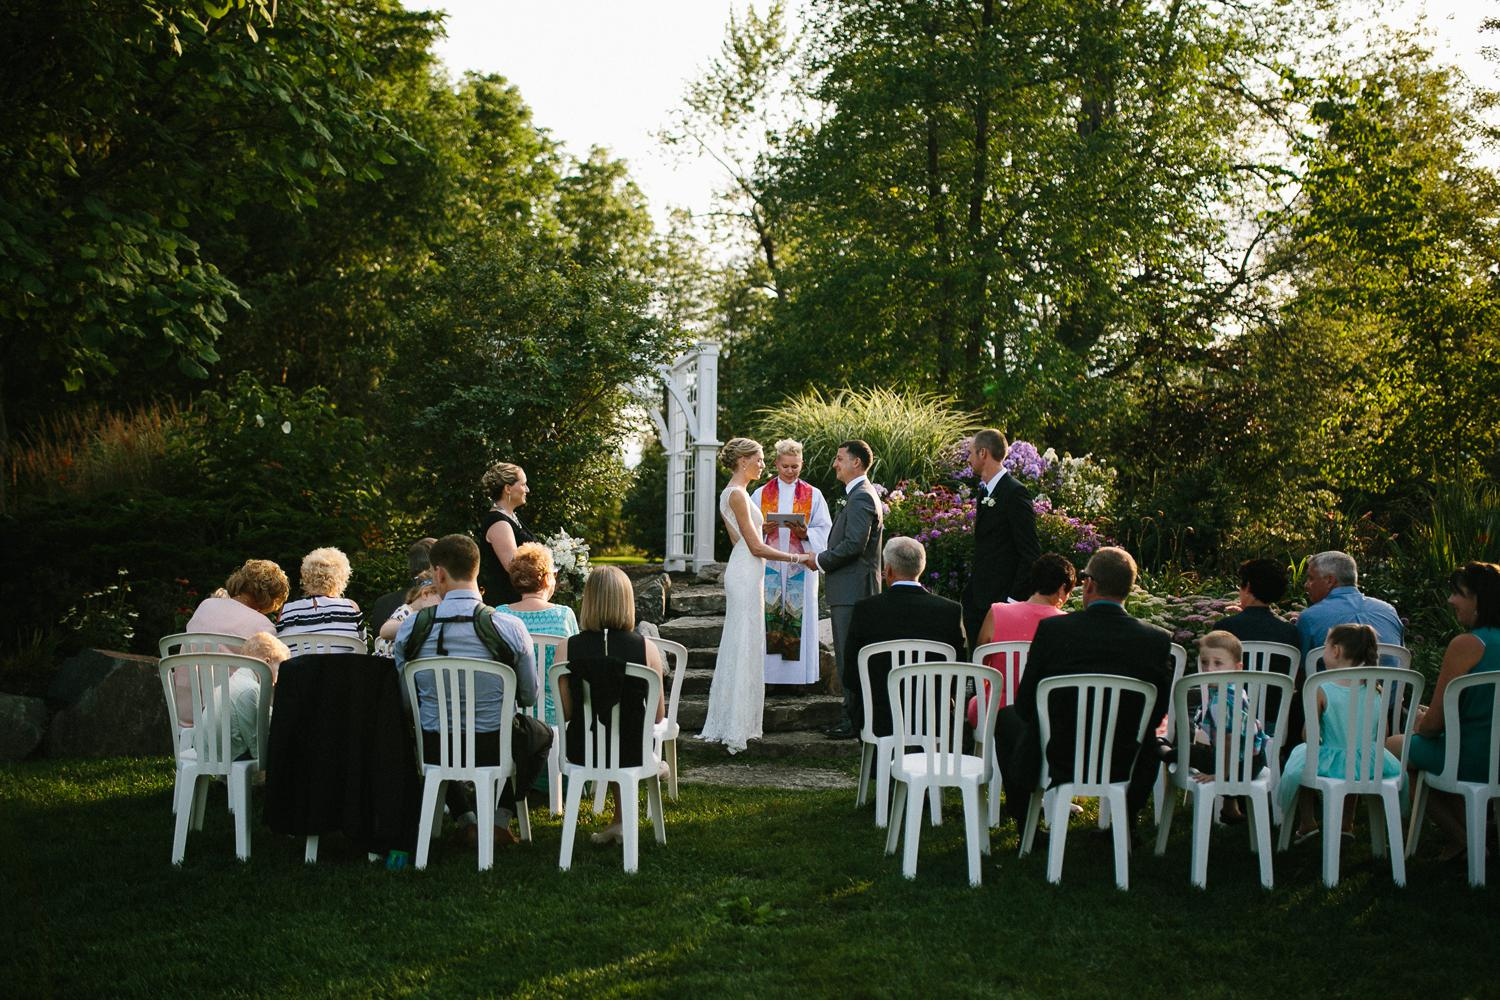 stewart park wedding ceremony-044.jpg